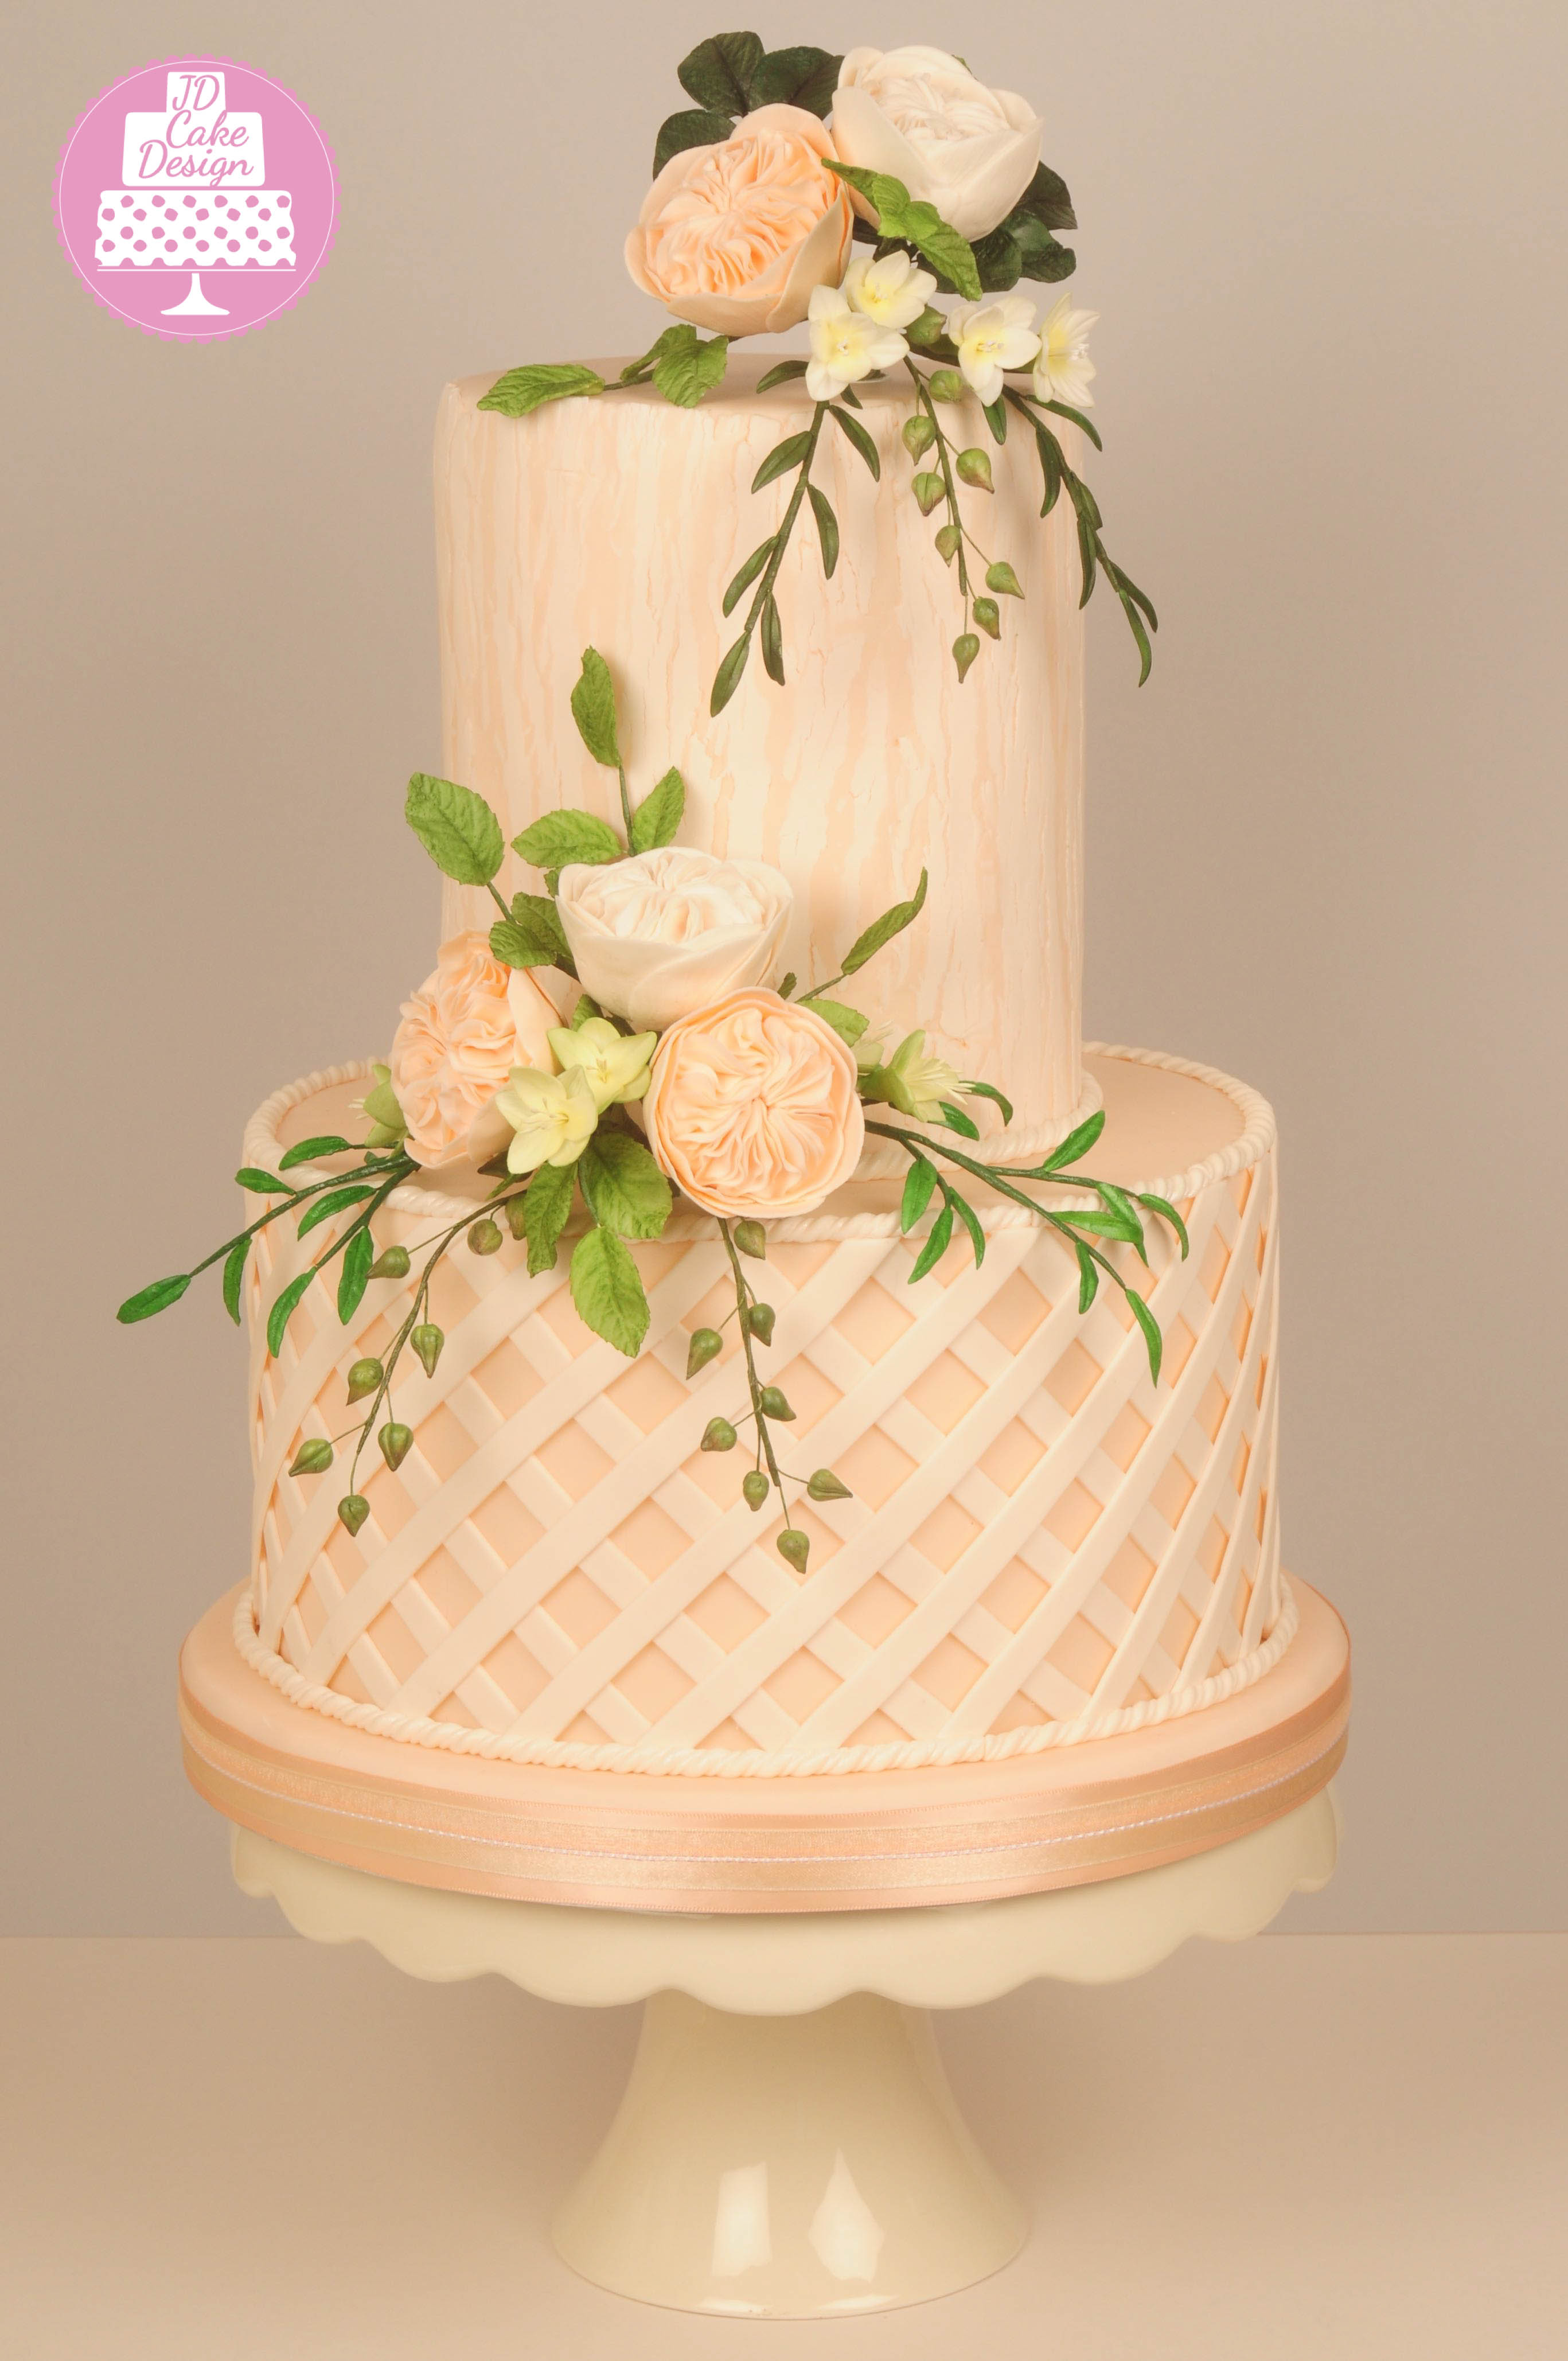 Peach and white fondant wedding cake